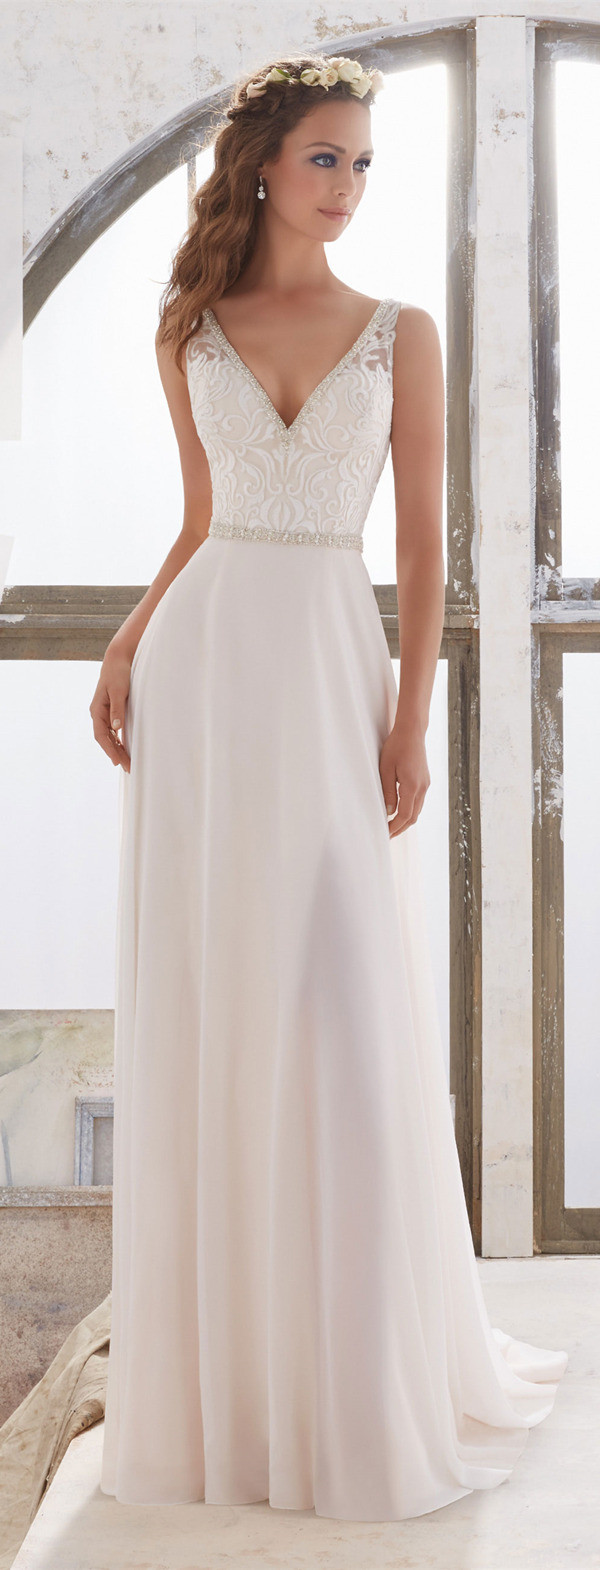 Llight V-neck wedding dress